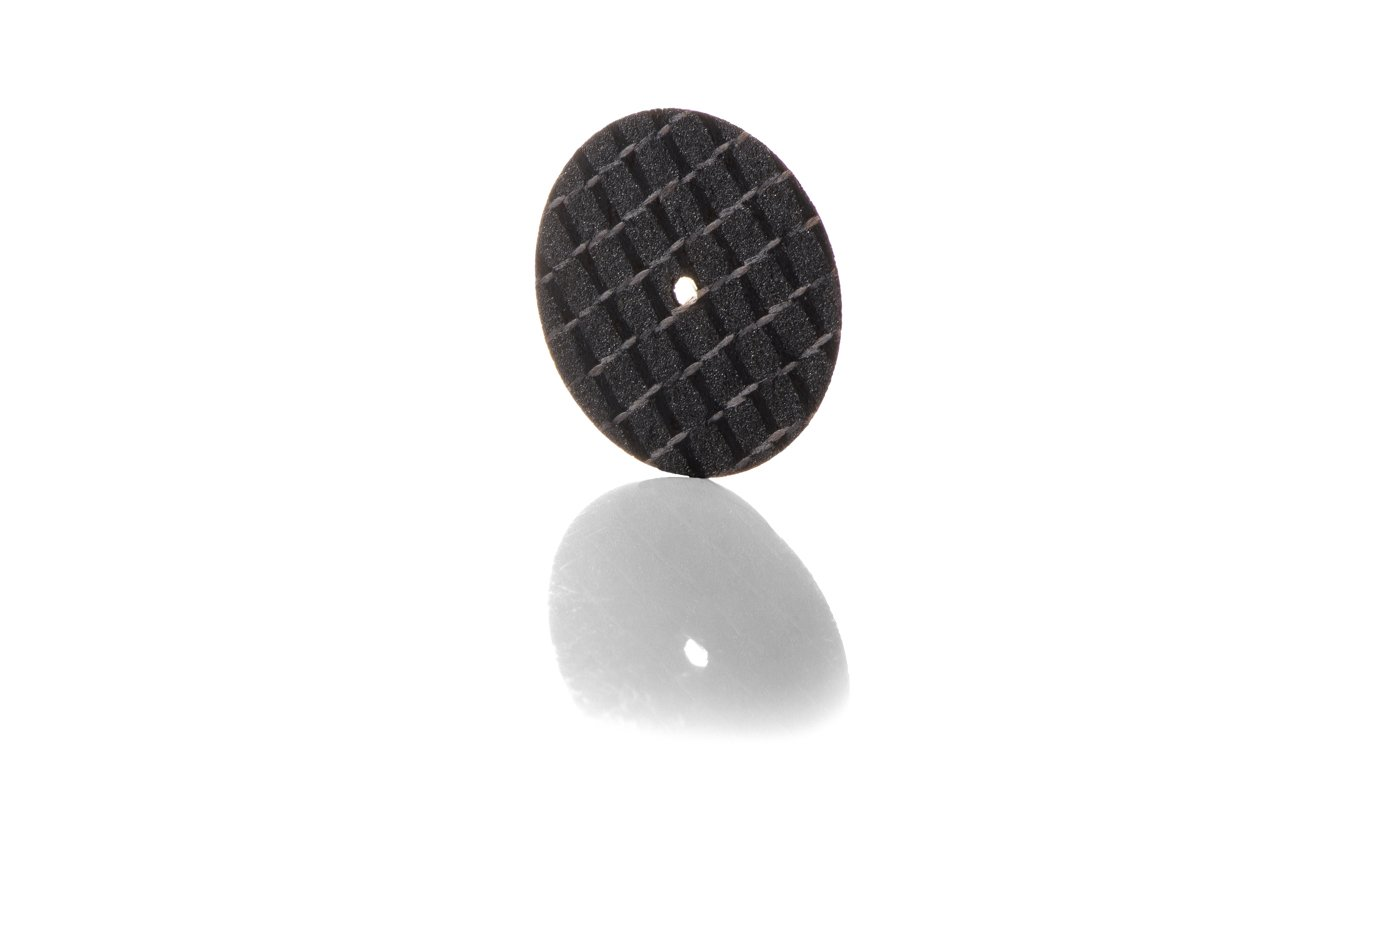 Pacific Abrasives Micro Fiber Separating Disc Silicon Carbide for Cutting Porcelain, Zirconia, and Pure Gold. (Pack 0f 100) by Pacific Abrasives (Image #2)